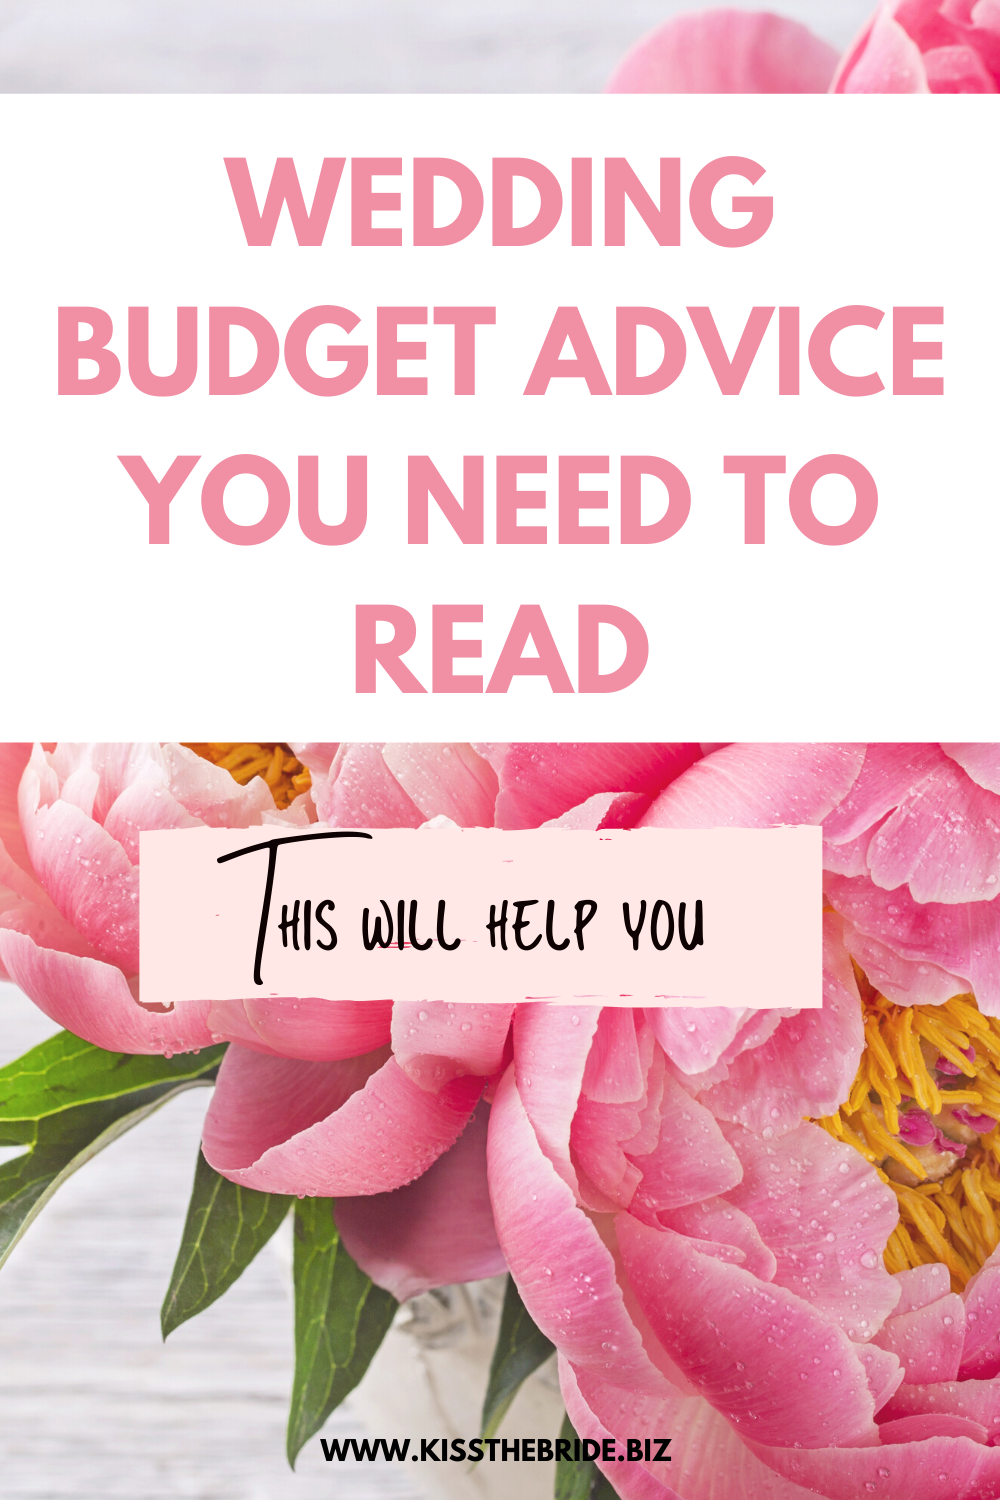 Wedding budget ideas and advice